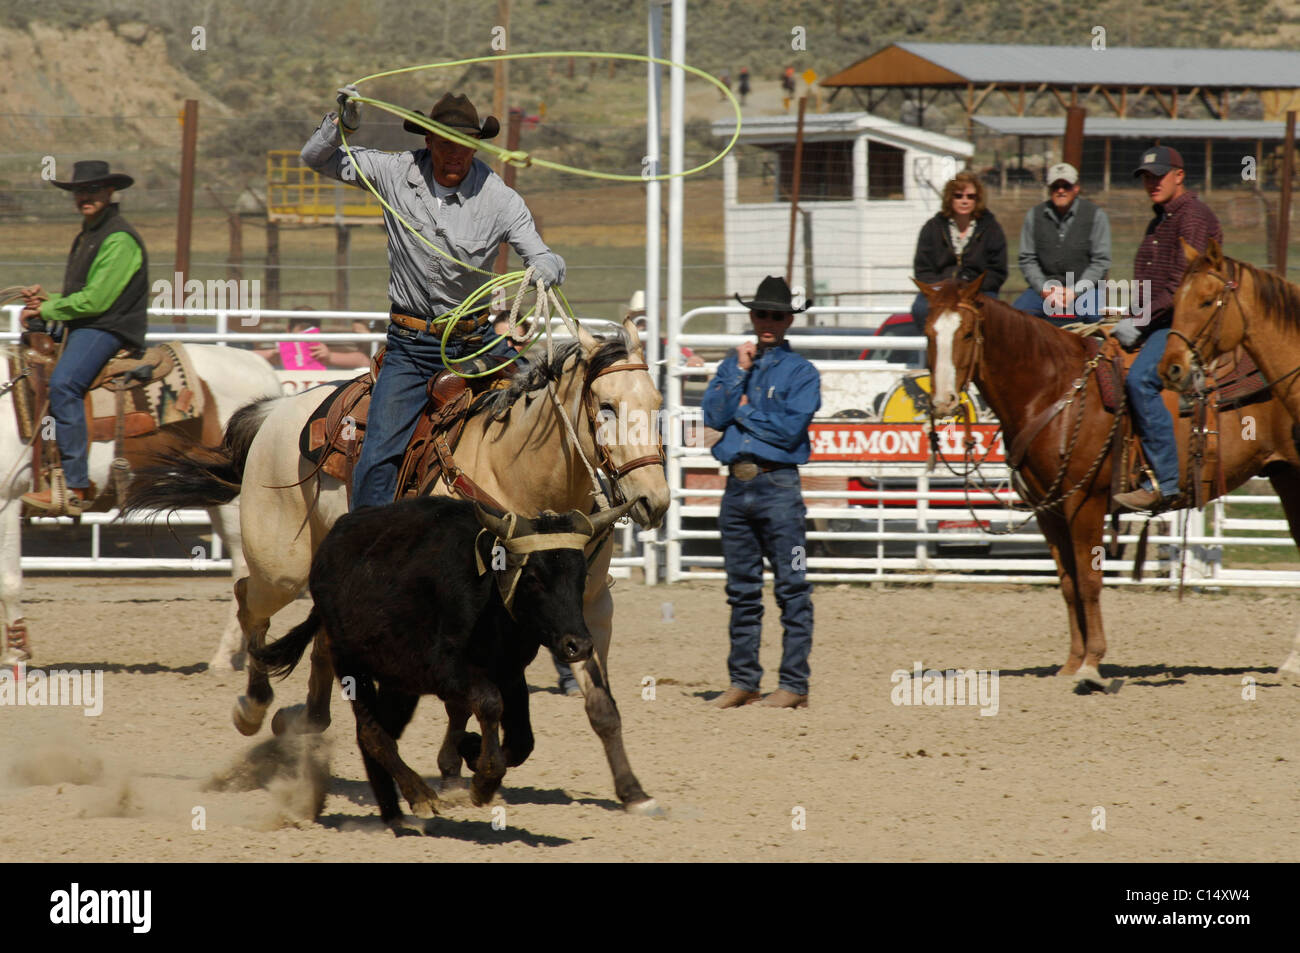 Extreme team roping